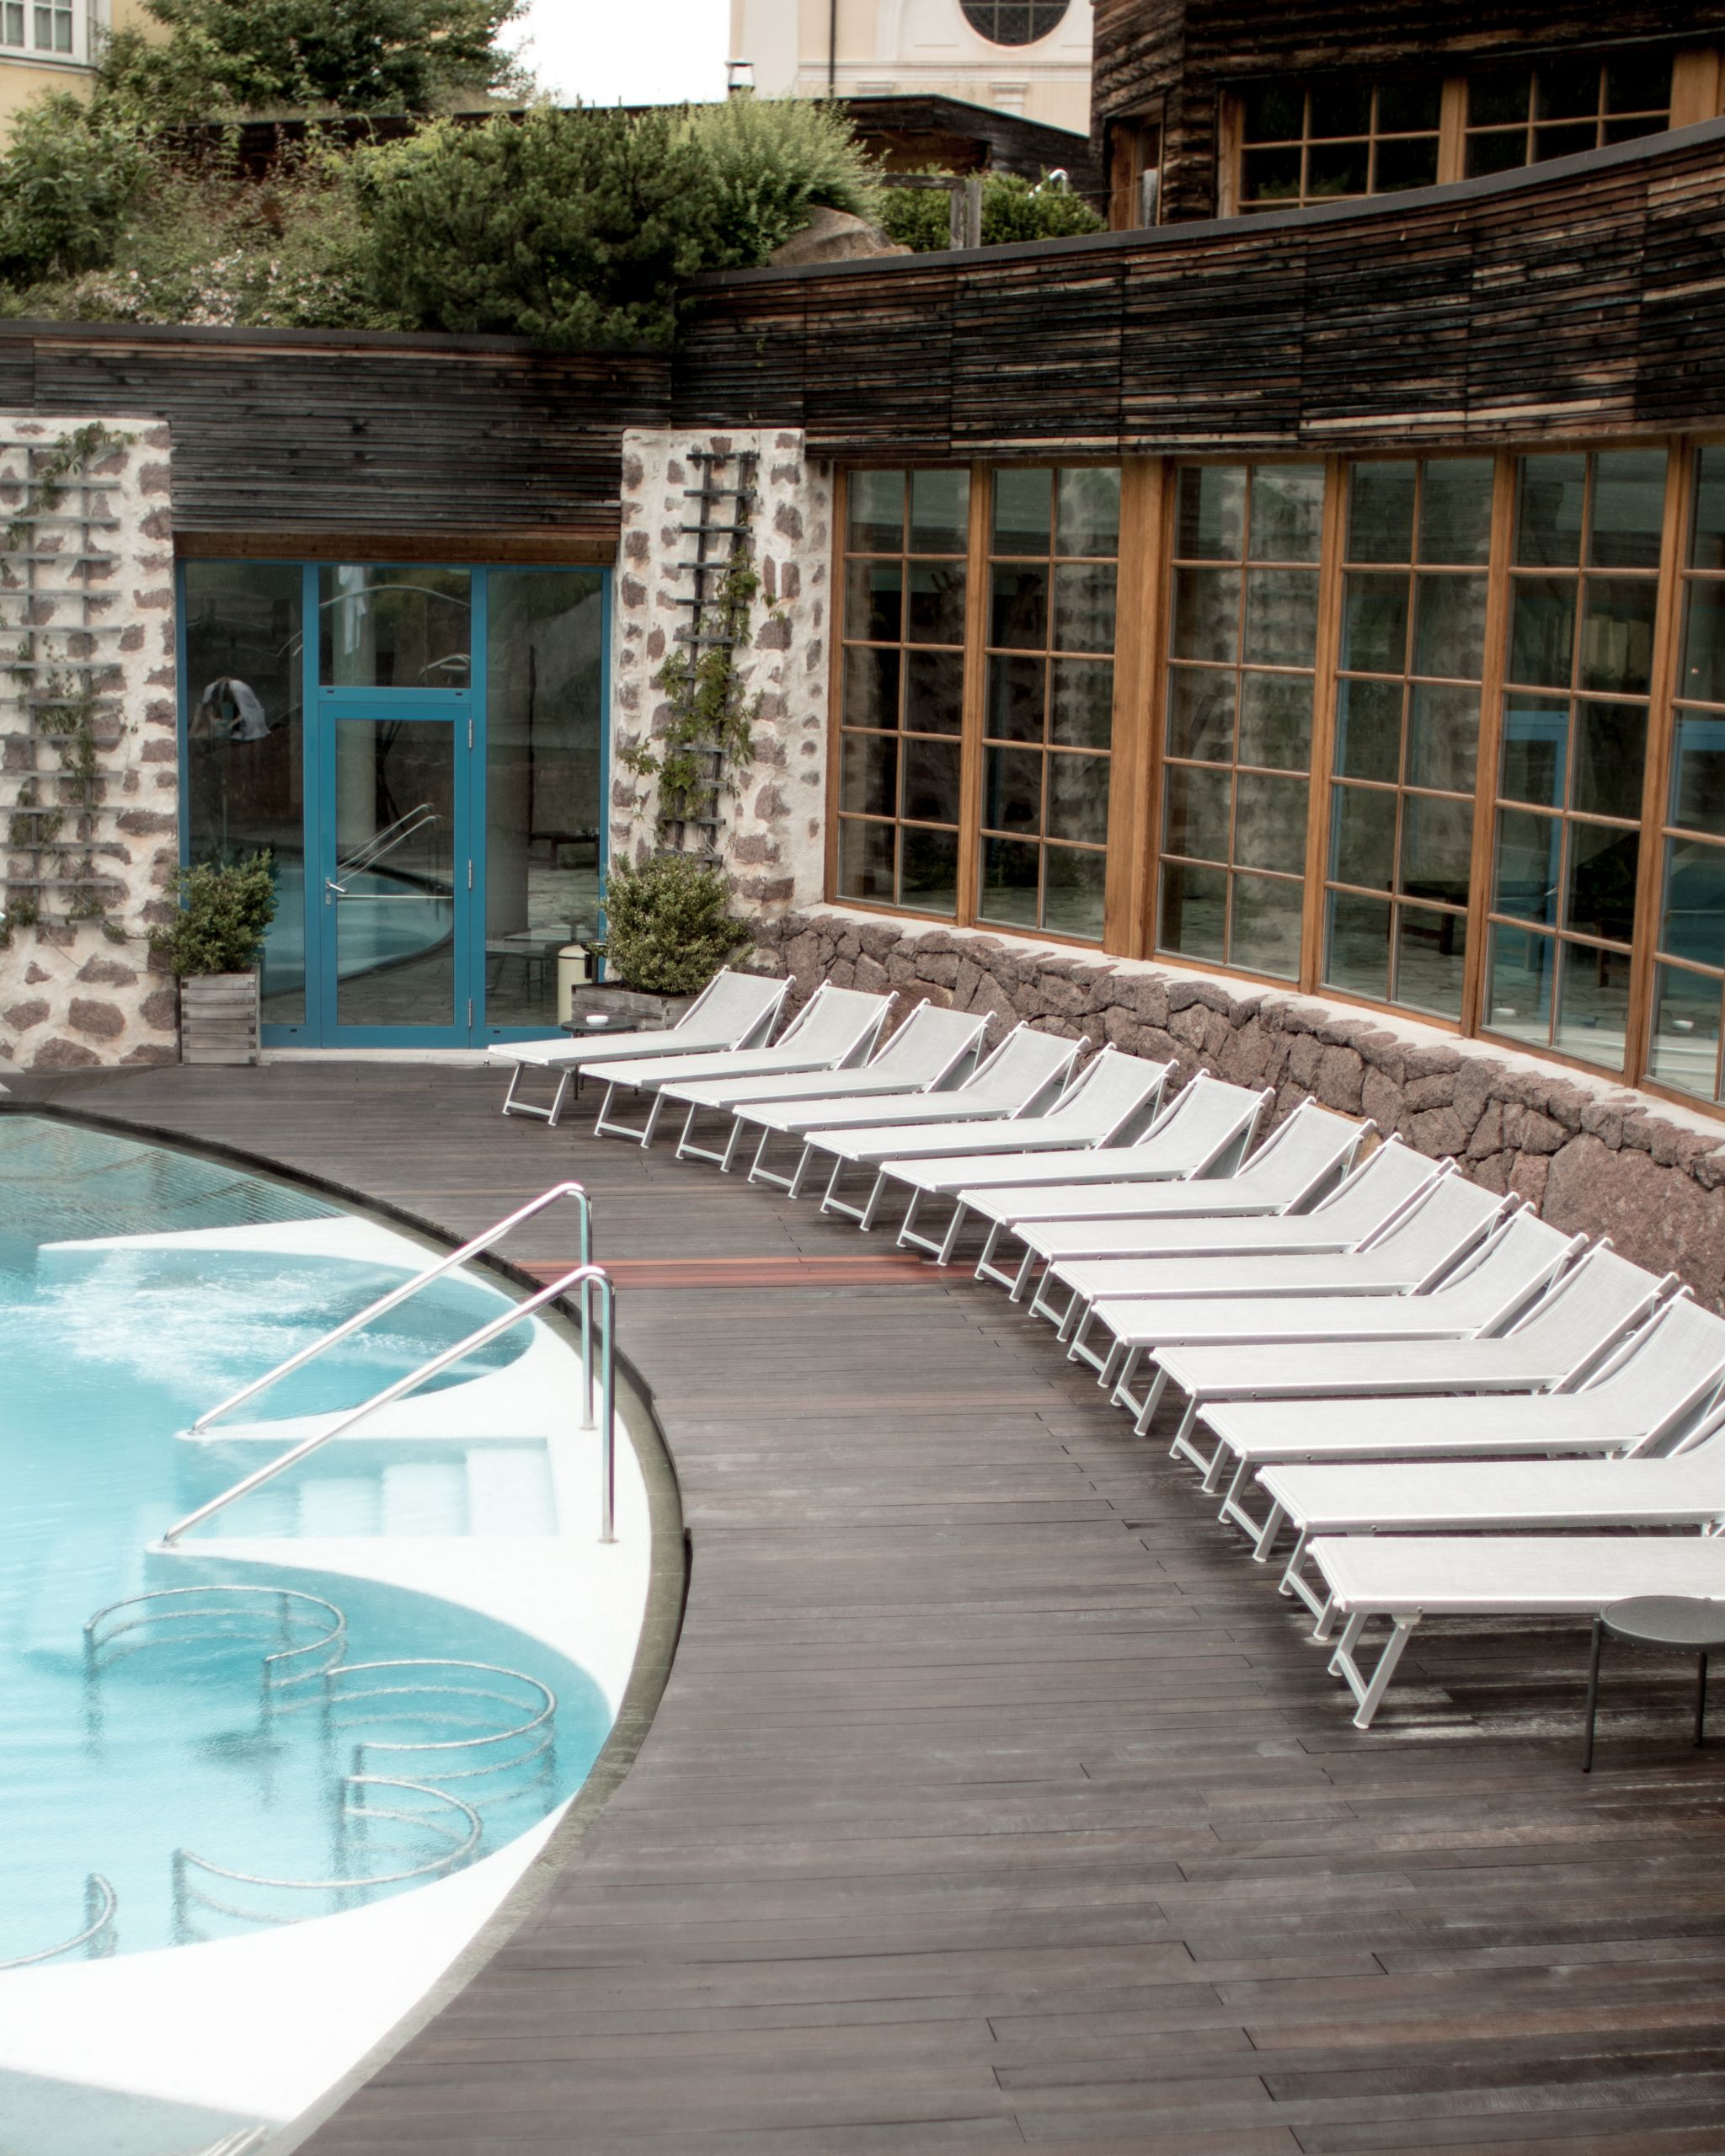 Adler Dolomites Hotel Ortisei Italy Hotel Review Exterior pools